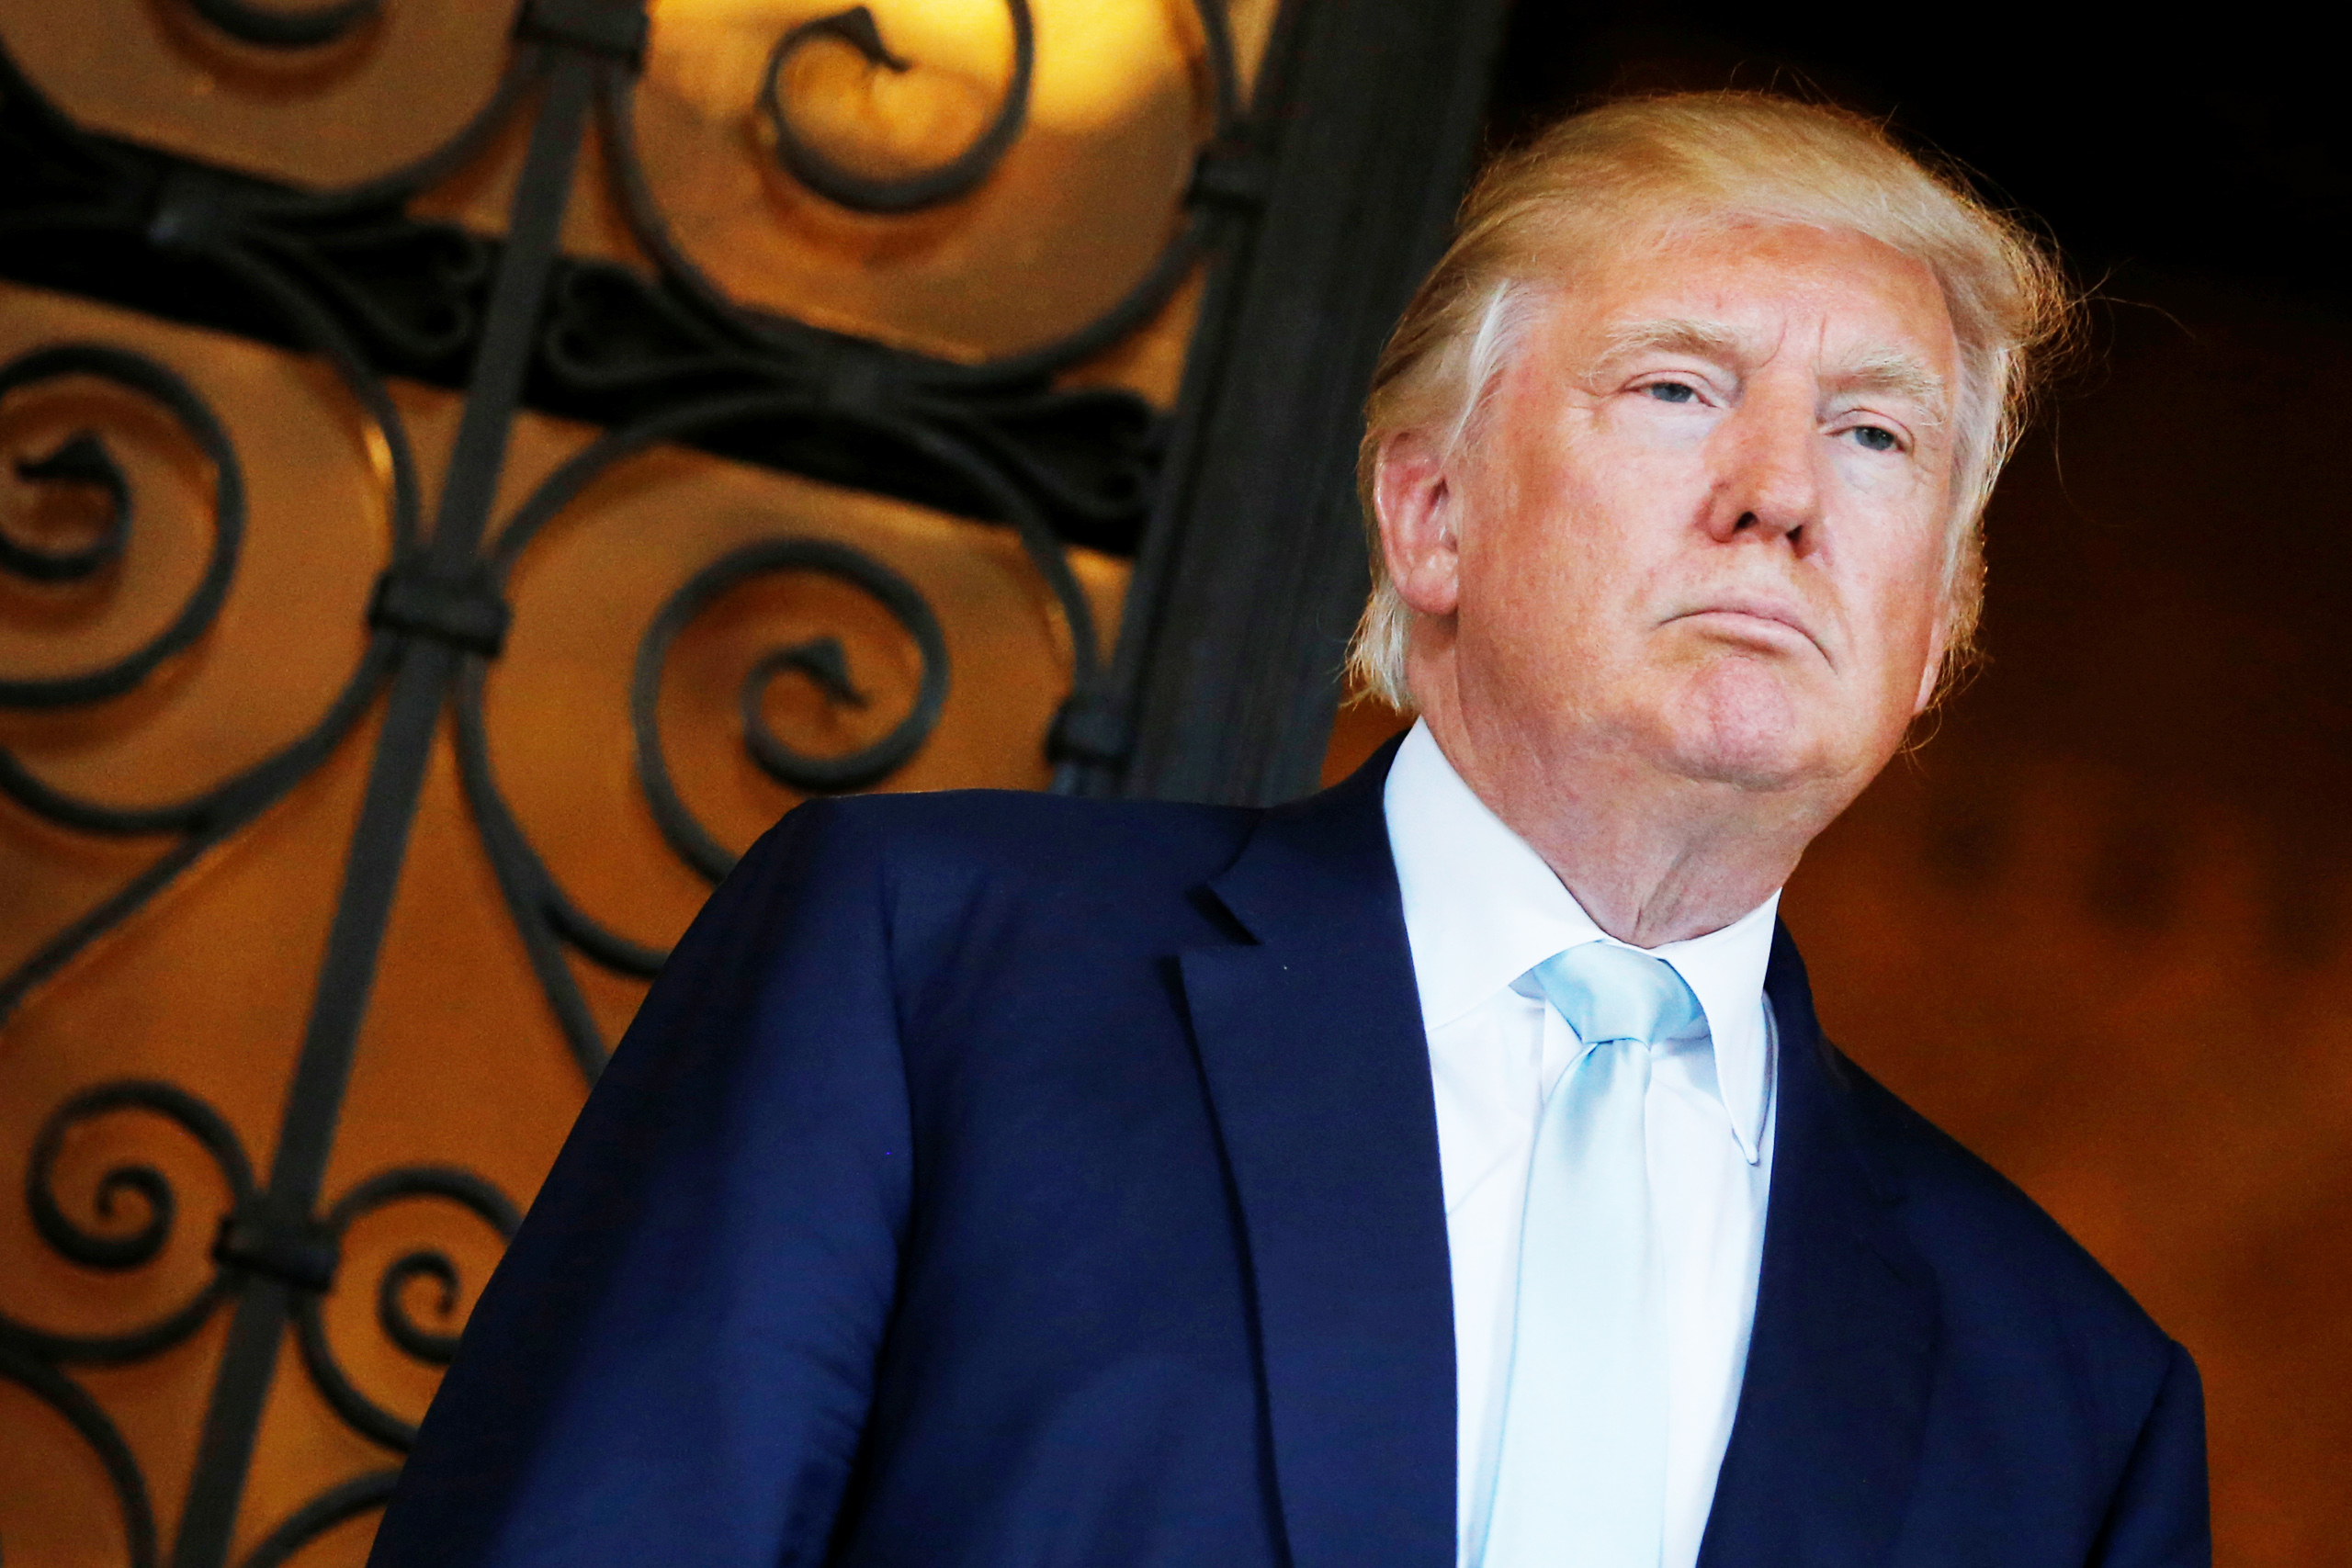 U.S. President-elect Donald Trump delivered brief remarks to reporters at the Mar-a-Lago Club in Palm Beach, Florida, on Dec. 28, 2016.